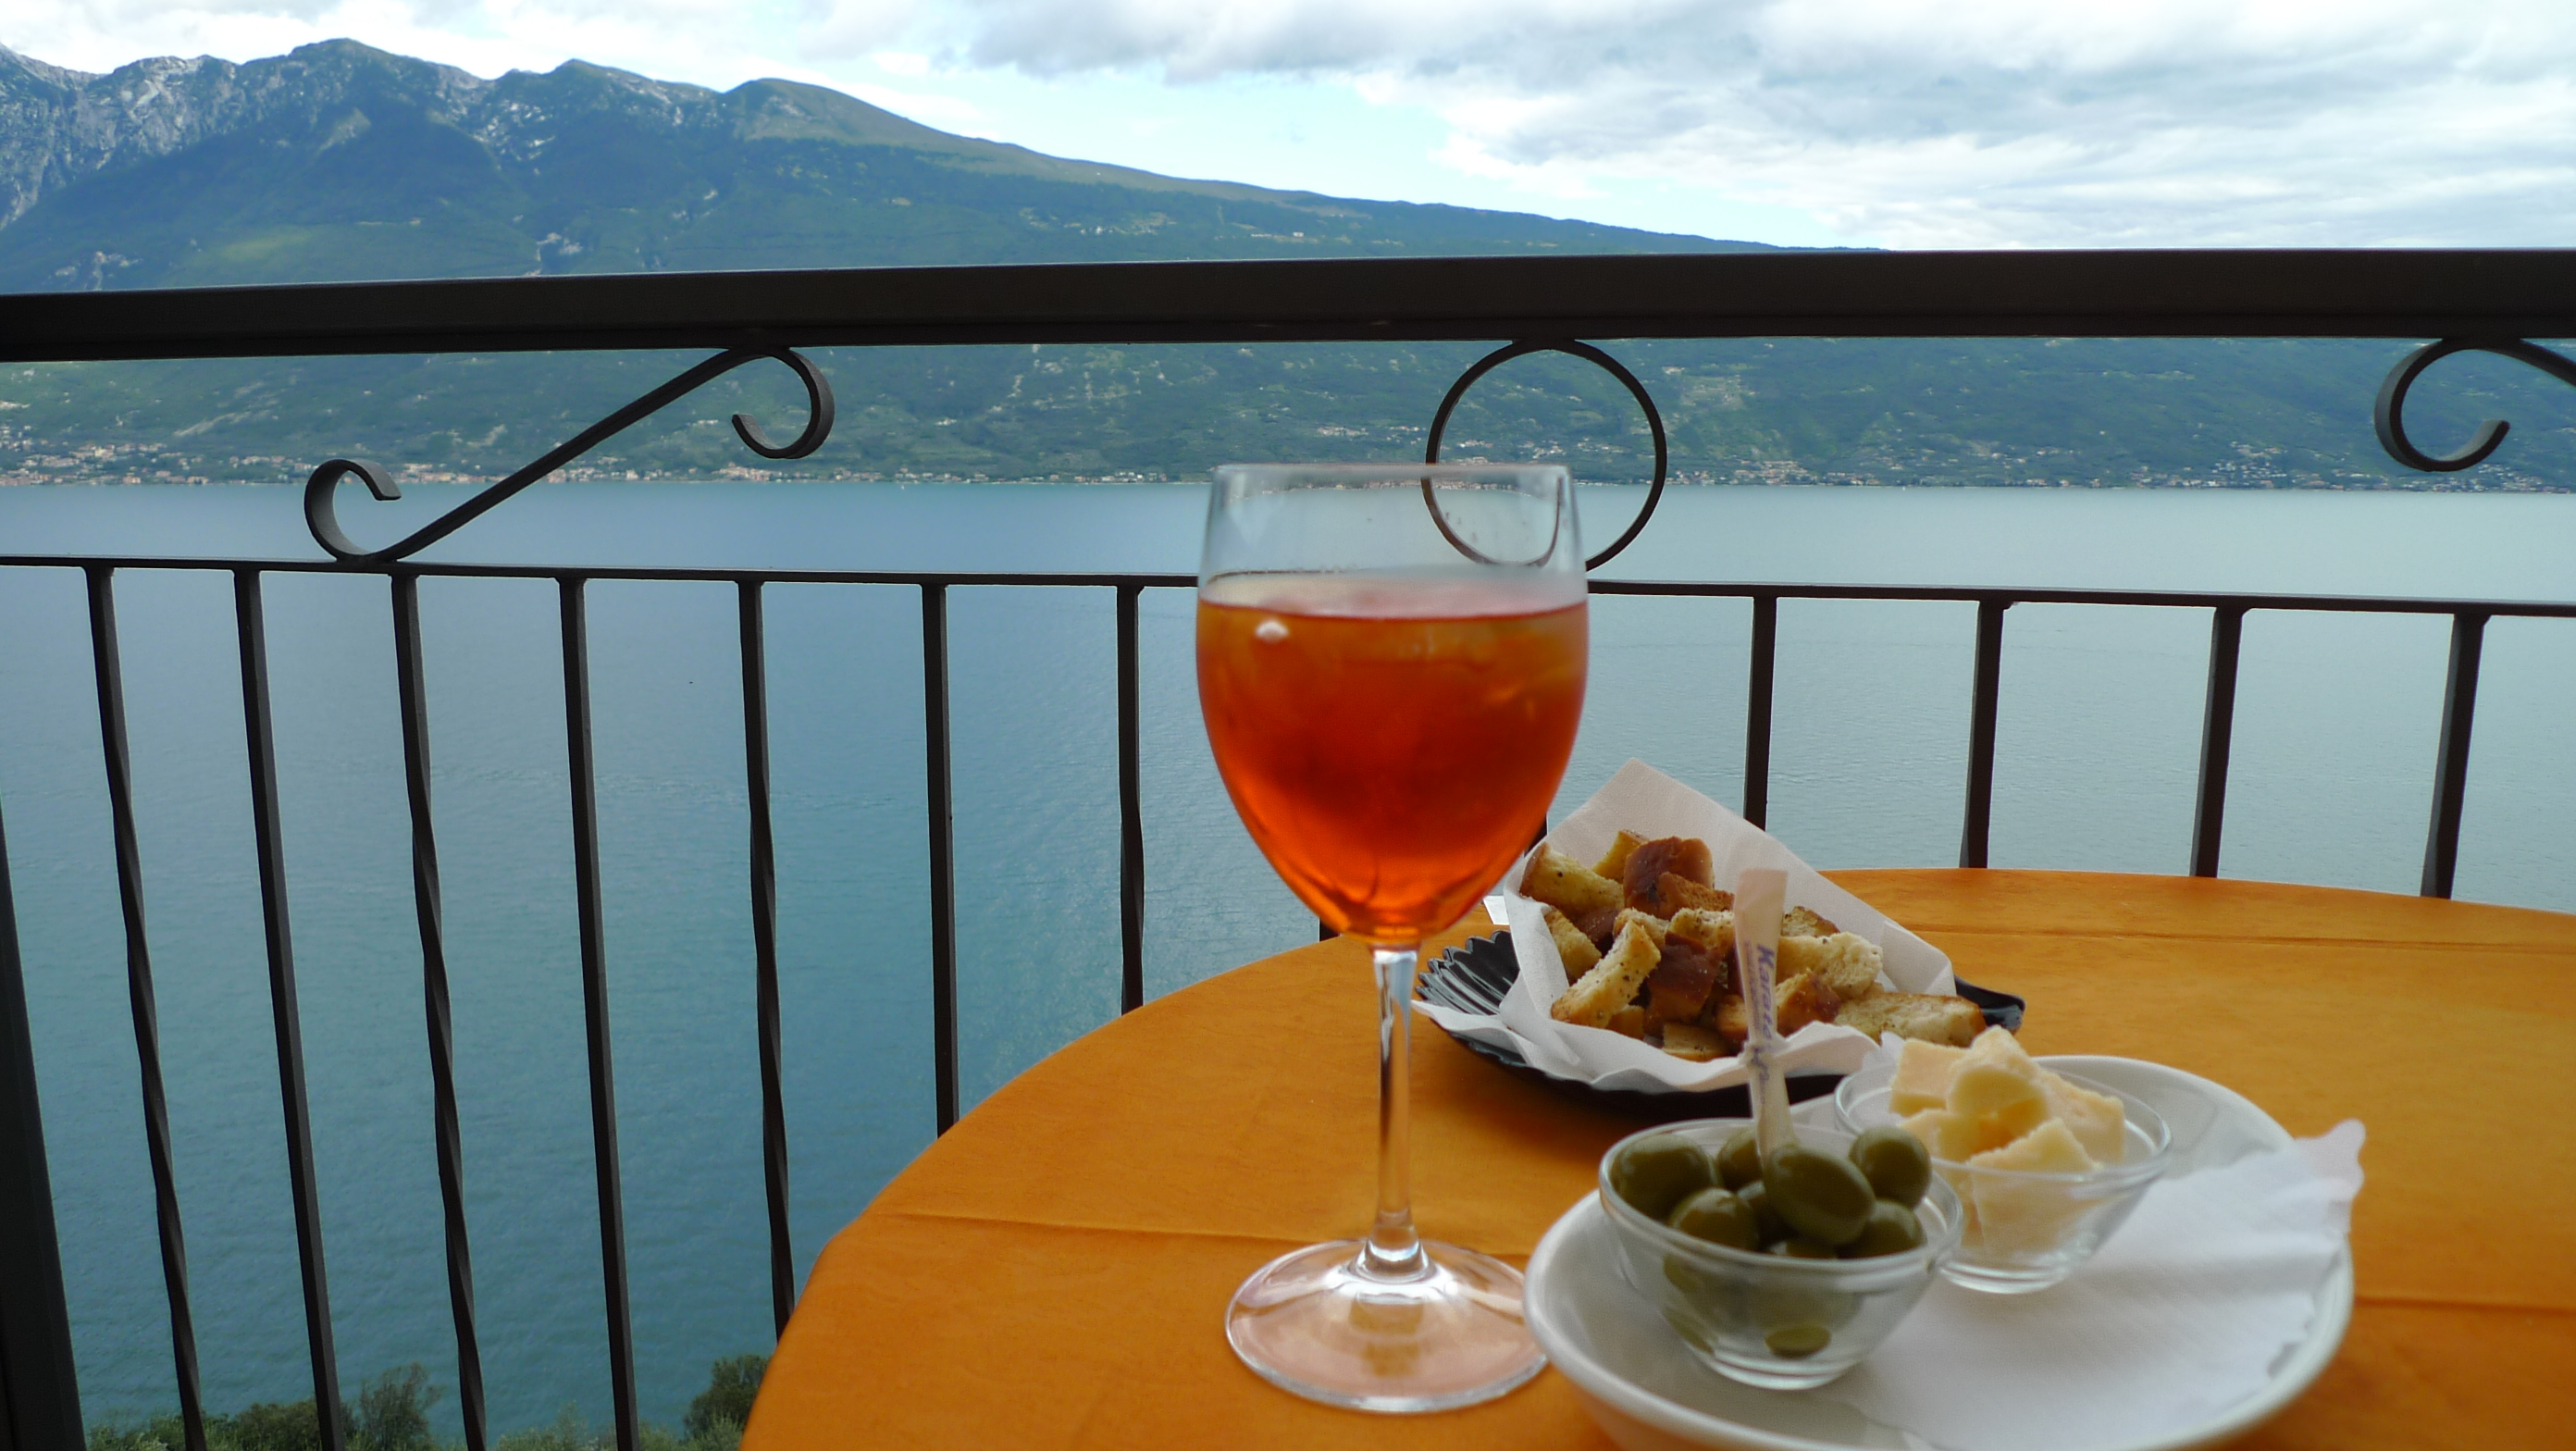 Aperitivo with view to East coast